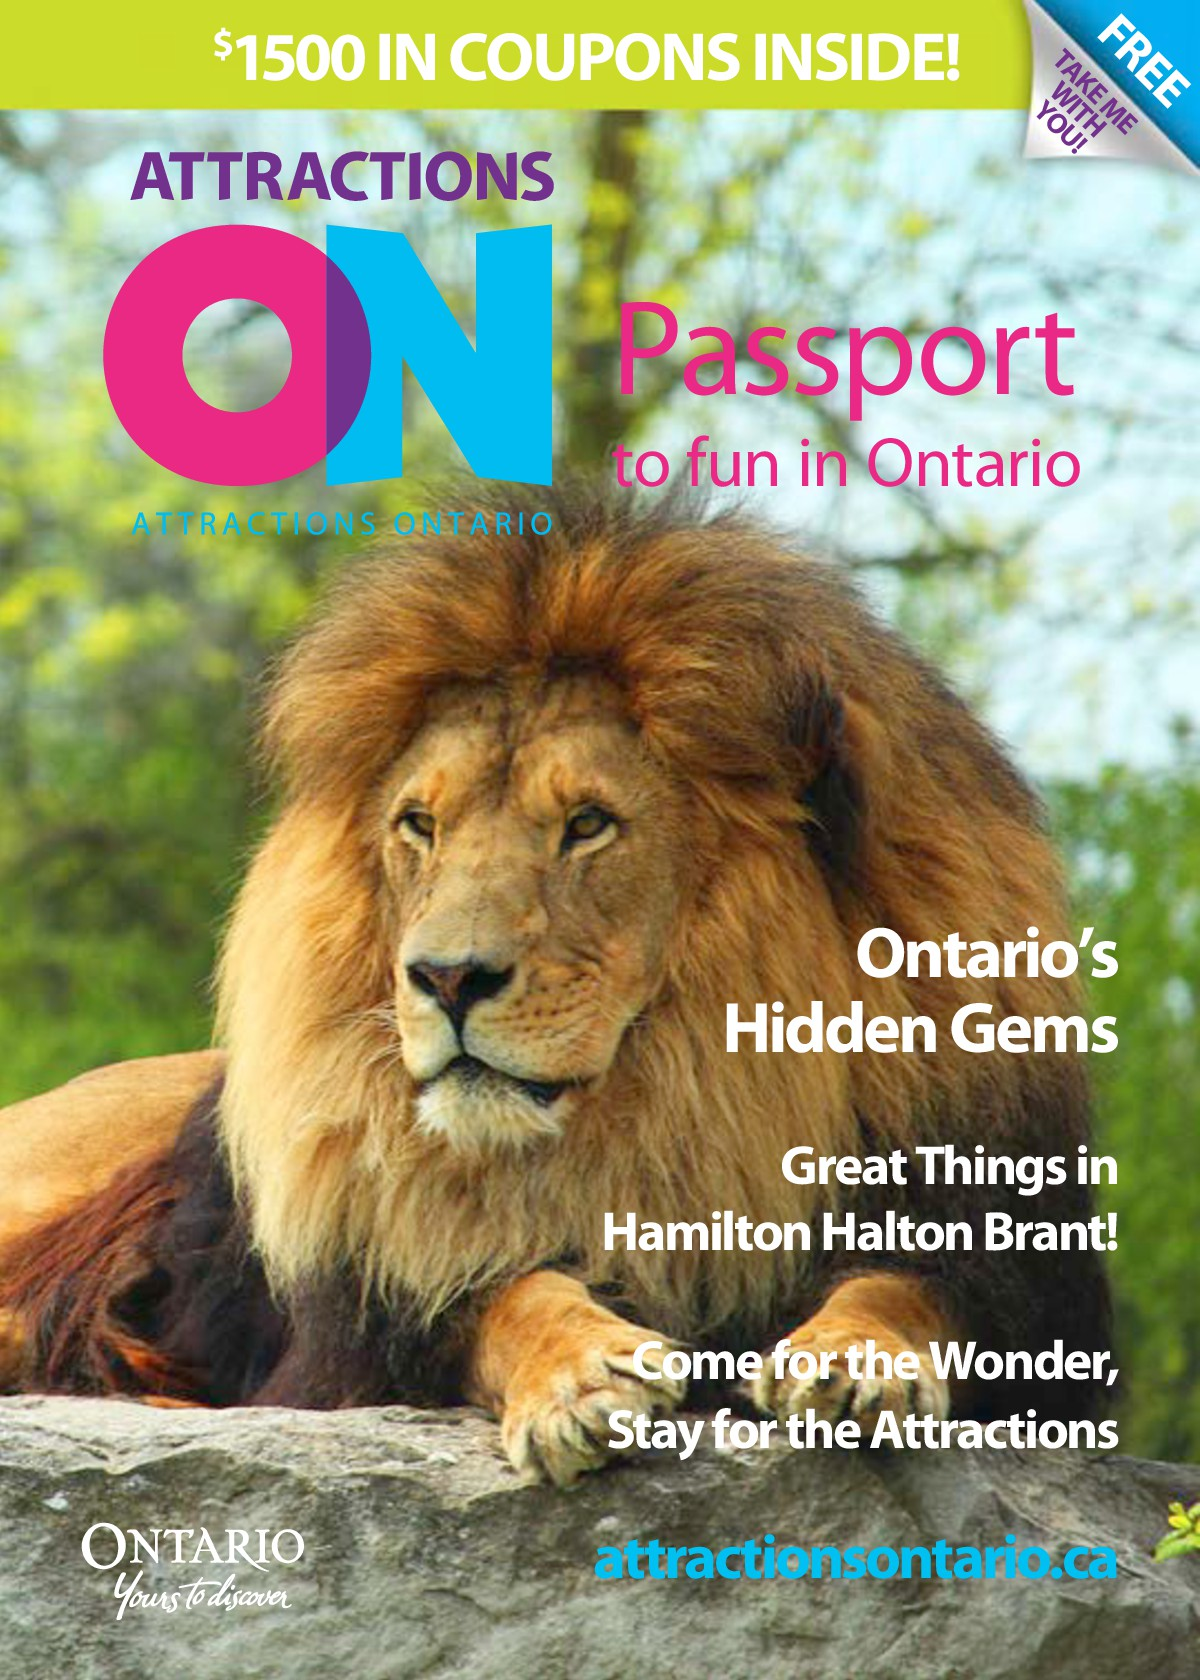 Passport Magazine and Coupon Book - Attractions Ontario